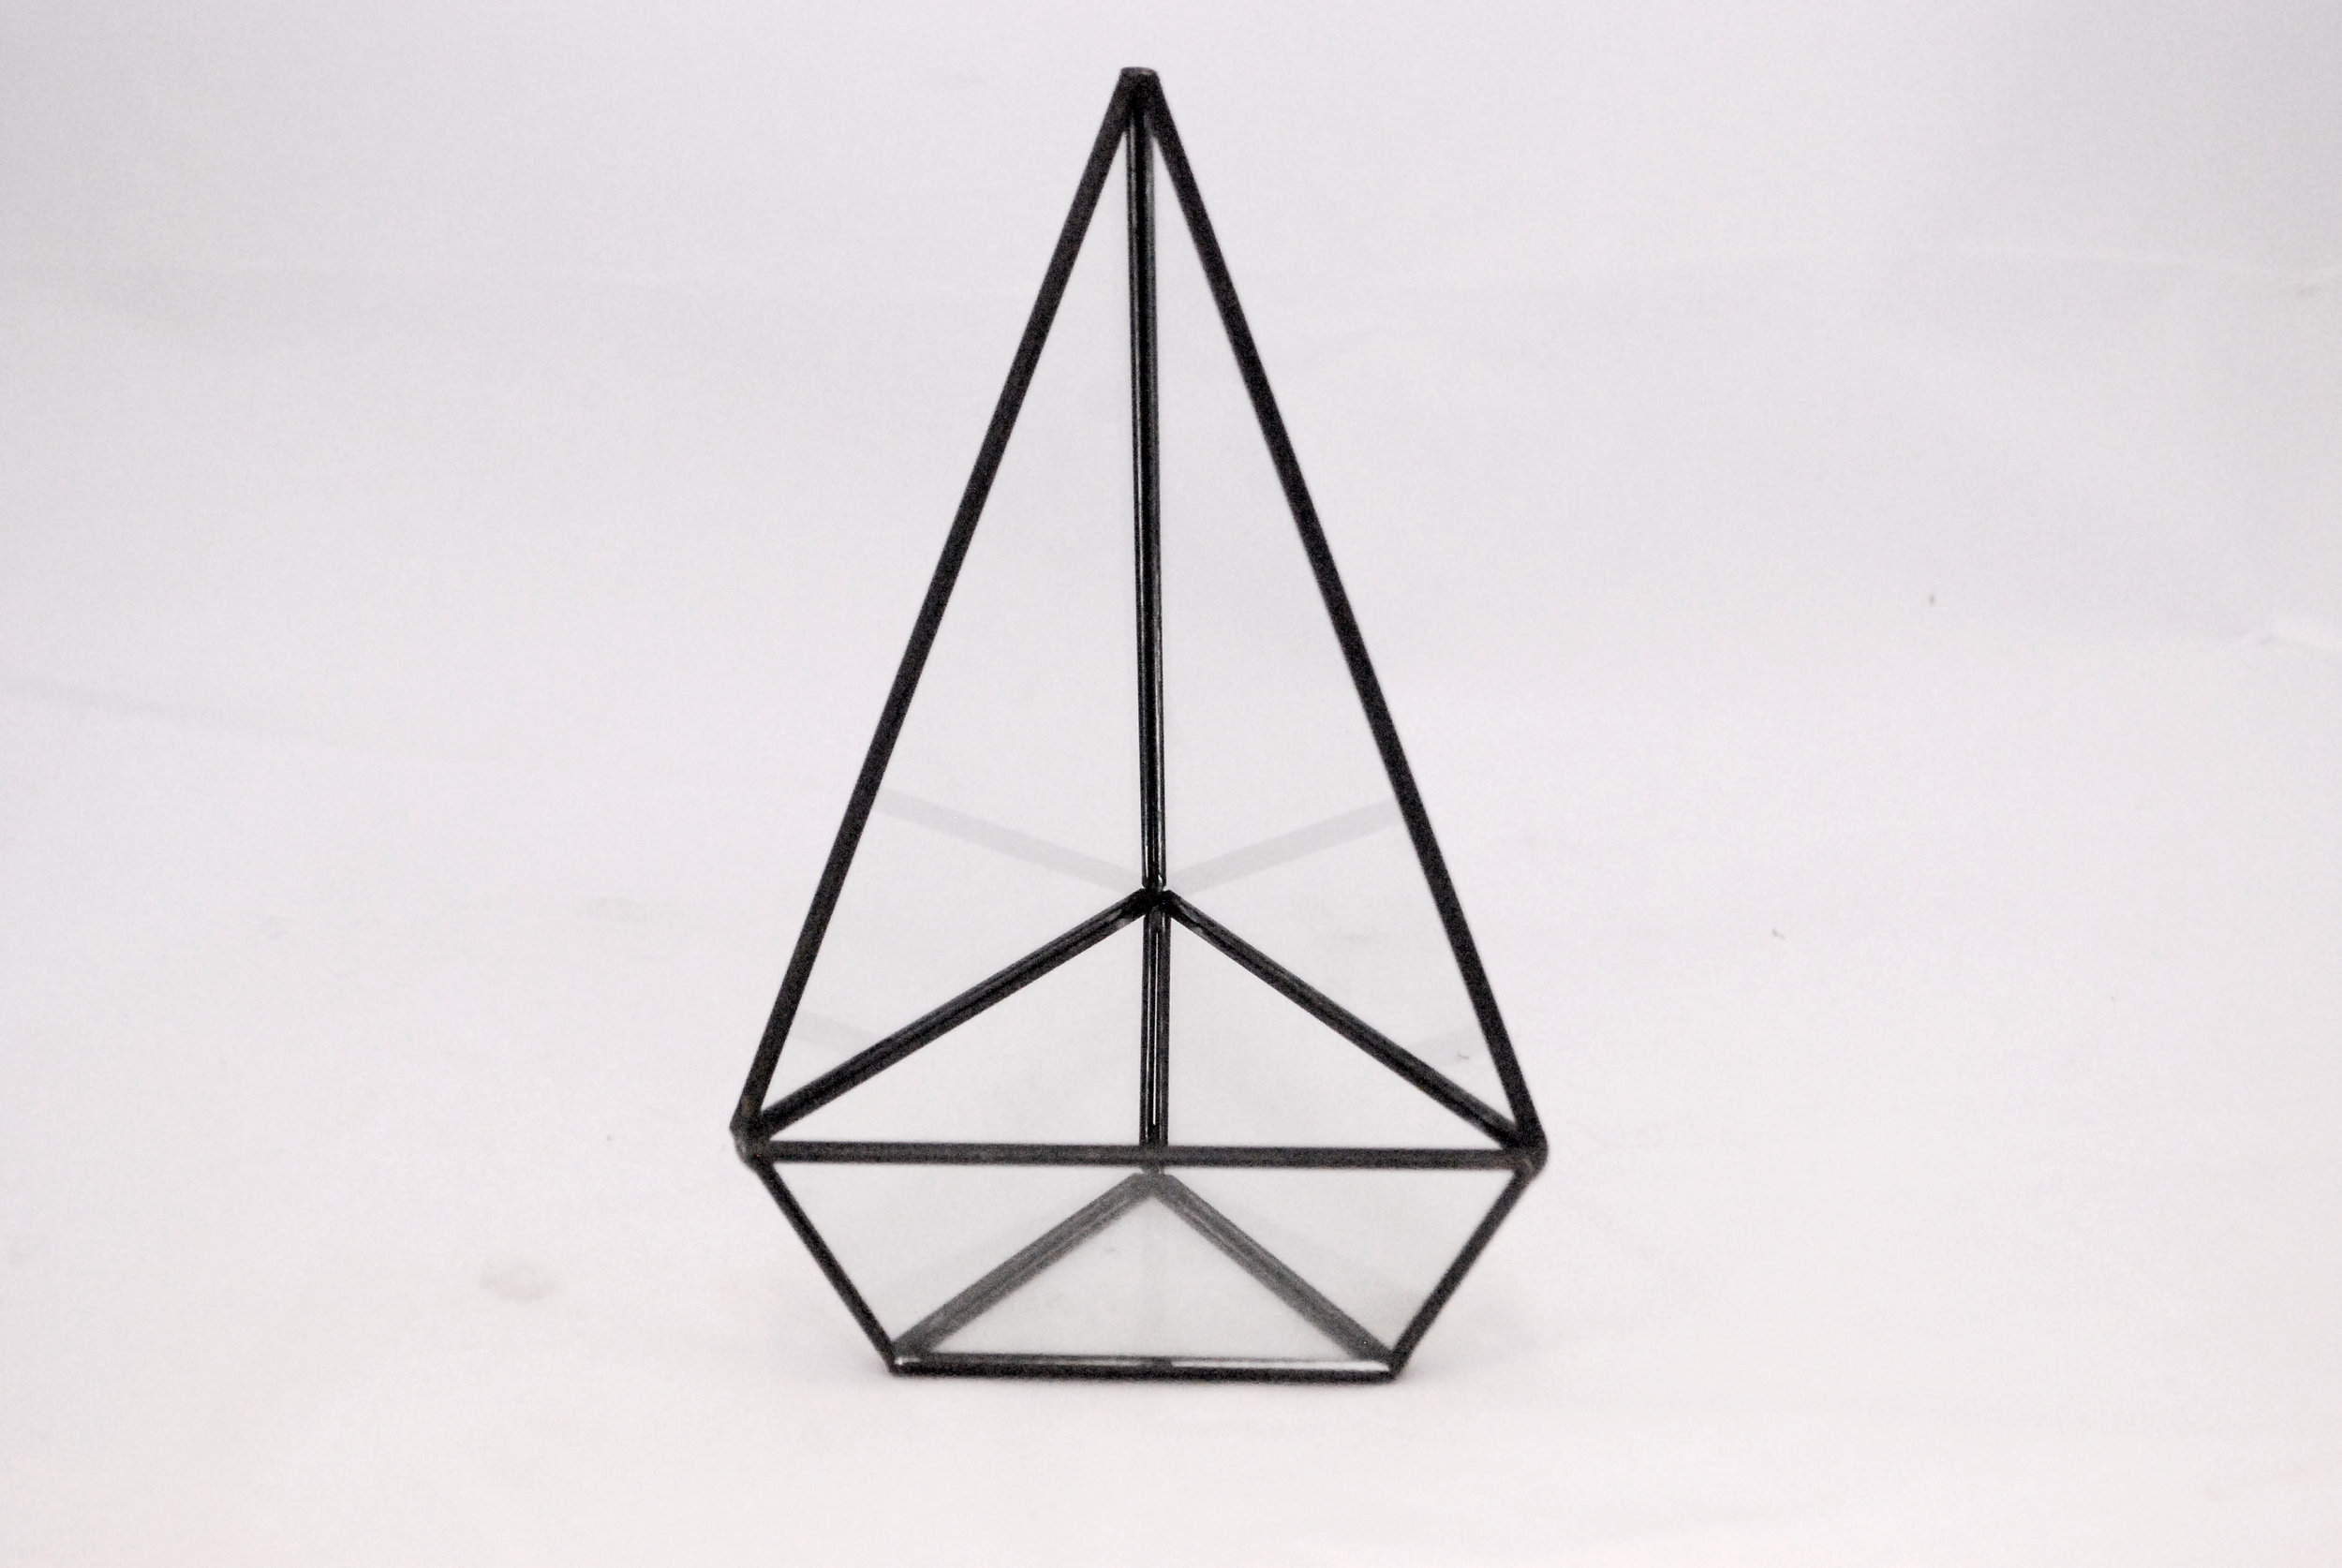 triangle - black terrarium   Quantity: 22  Price: $7.50